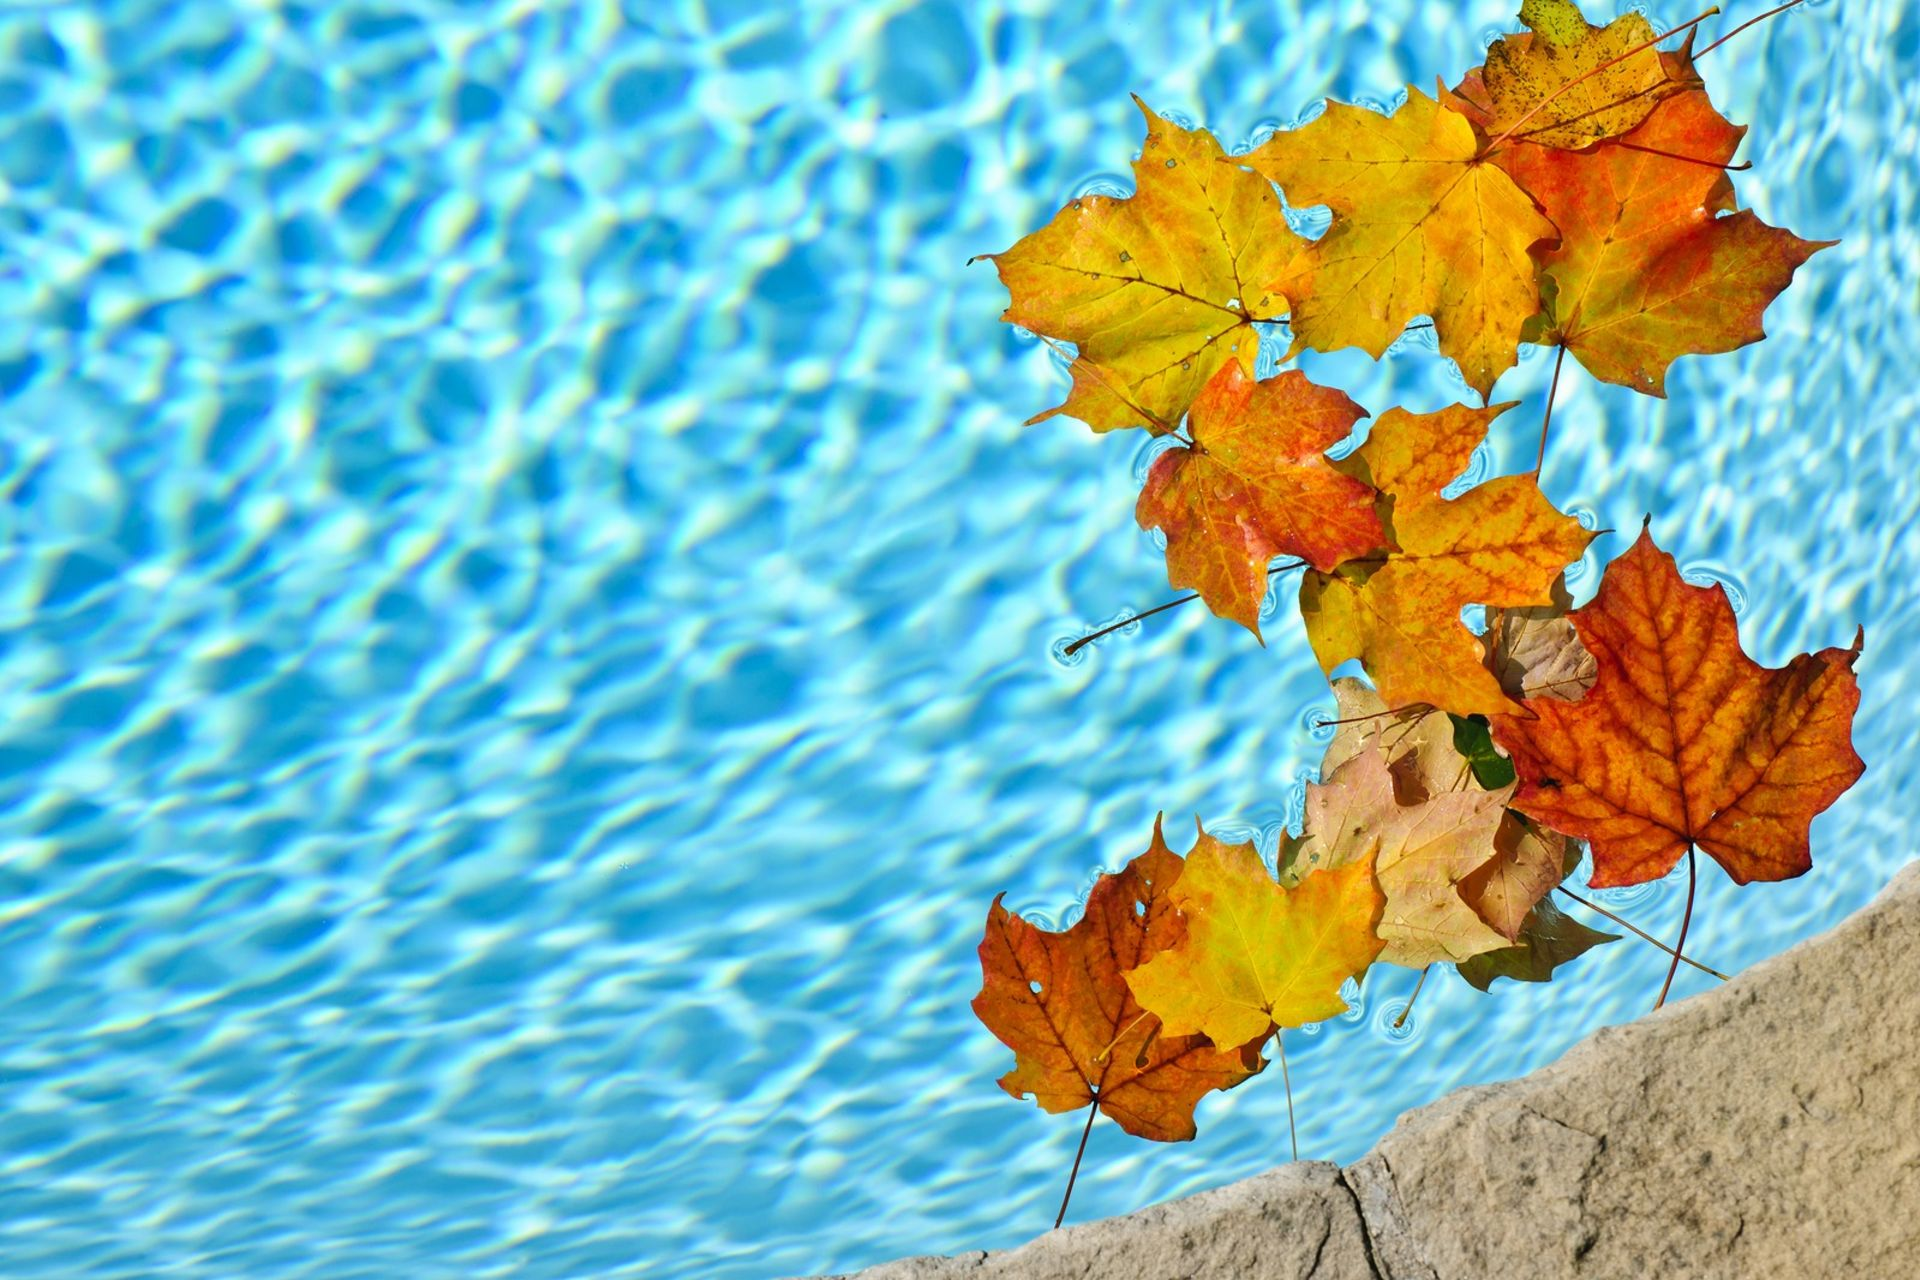 Pool Closings: Best Practices for Homeowners